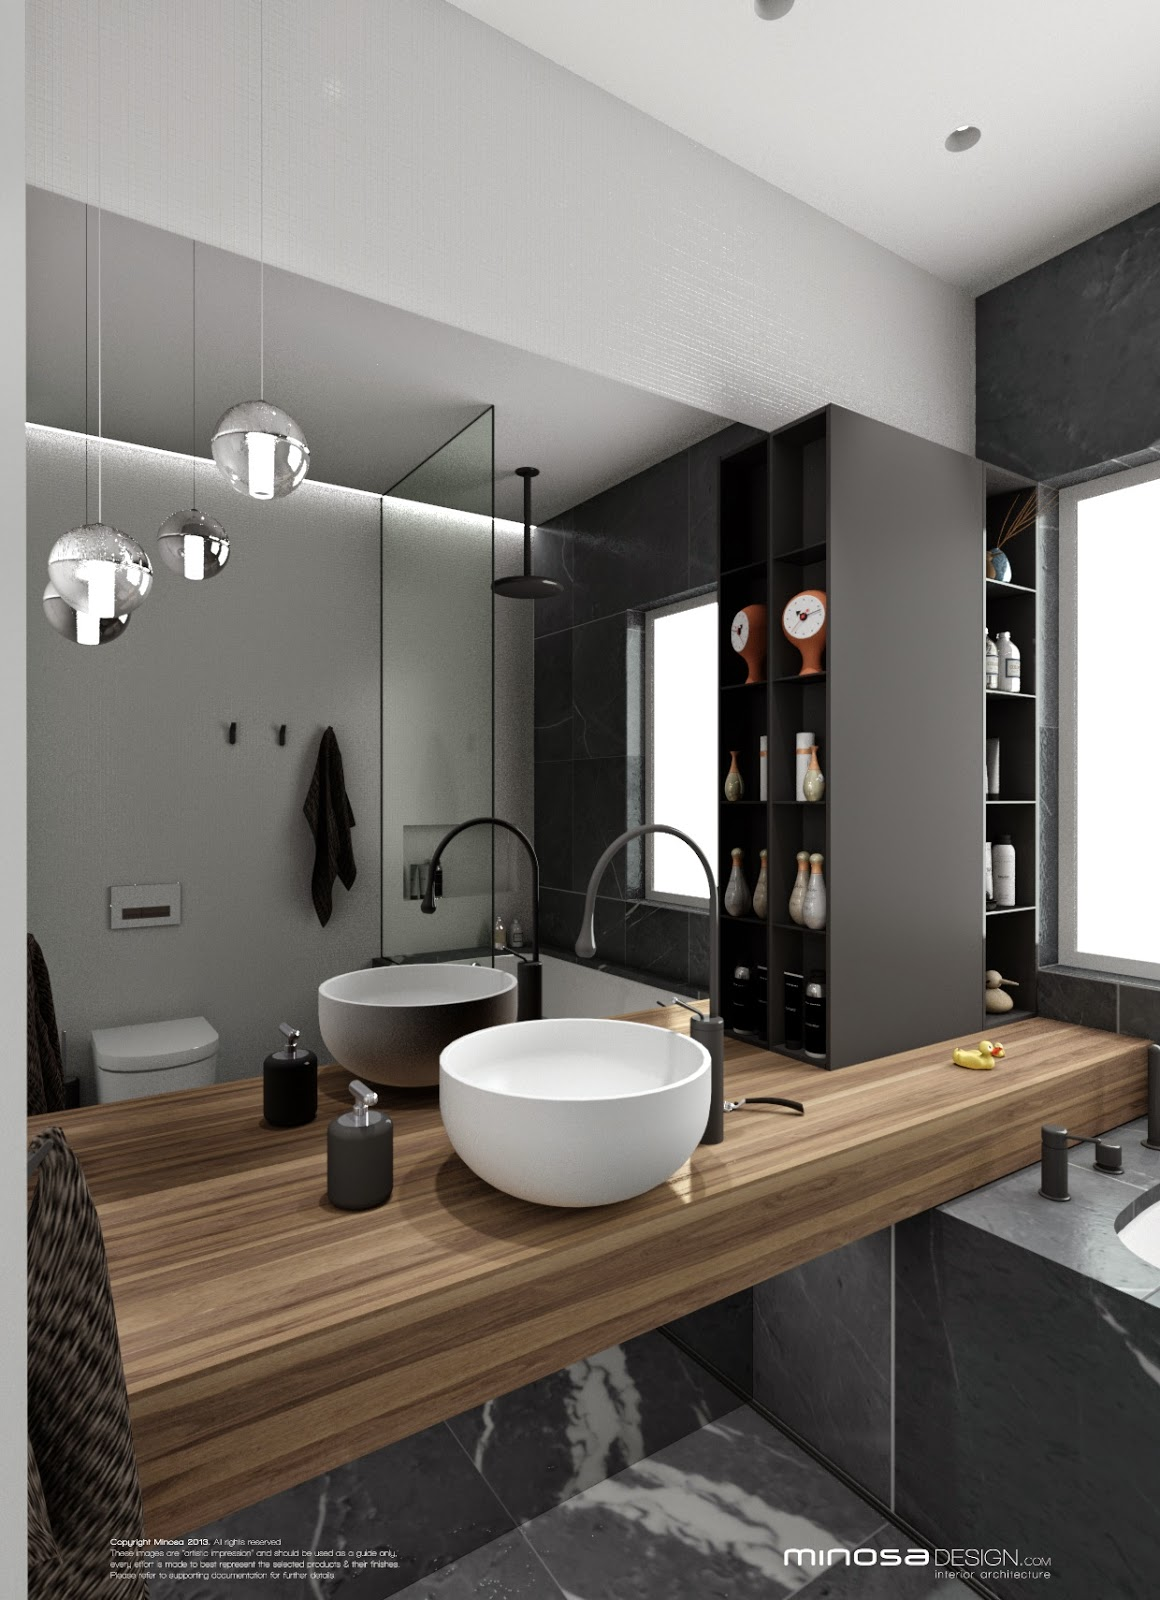 Minosa bathroom design small space feels large - Bathroom shower designs small spaces ...